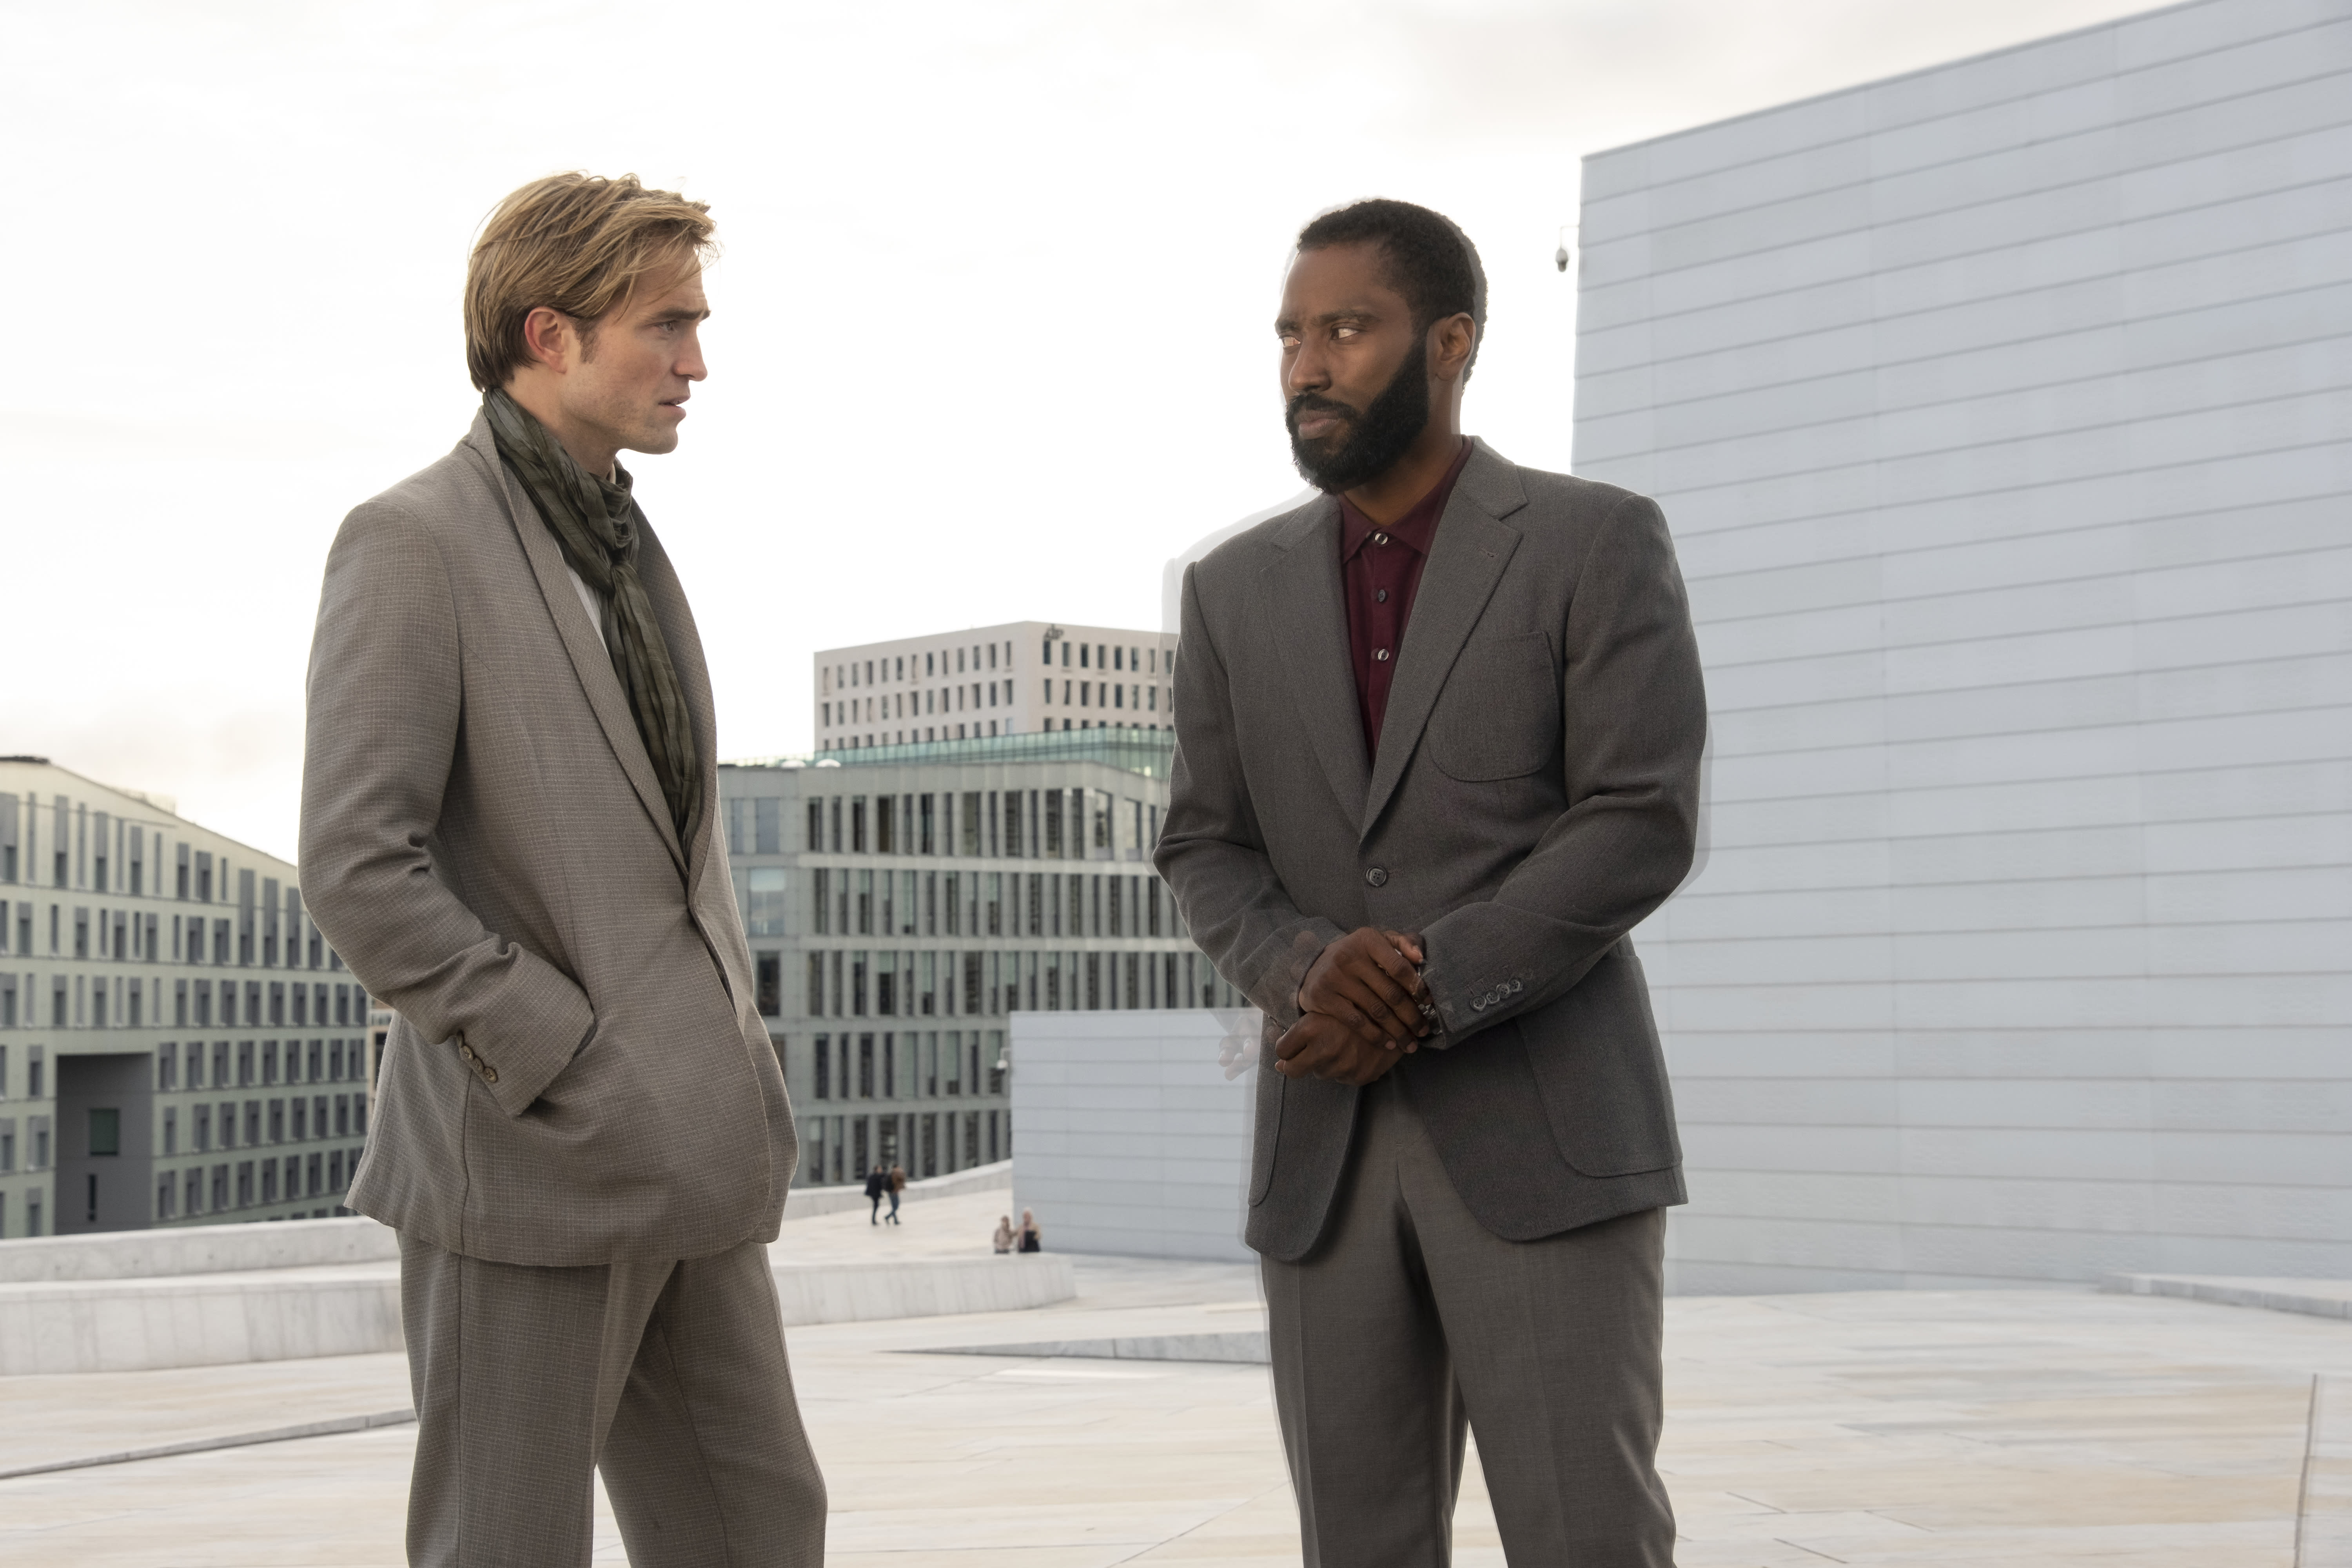 Robert Pattinson and John David Washington in a still from Tenet. (©2020 Warner Bros. Entertainment, Inc. All Rights Reserved.)